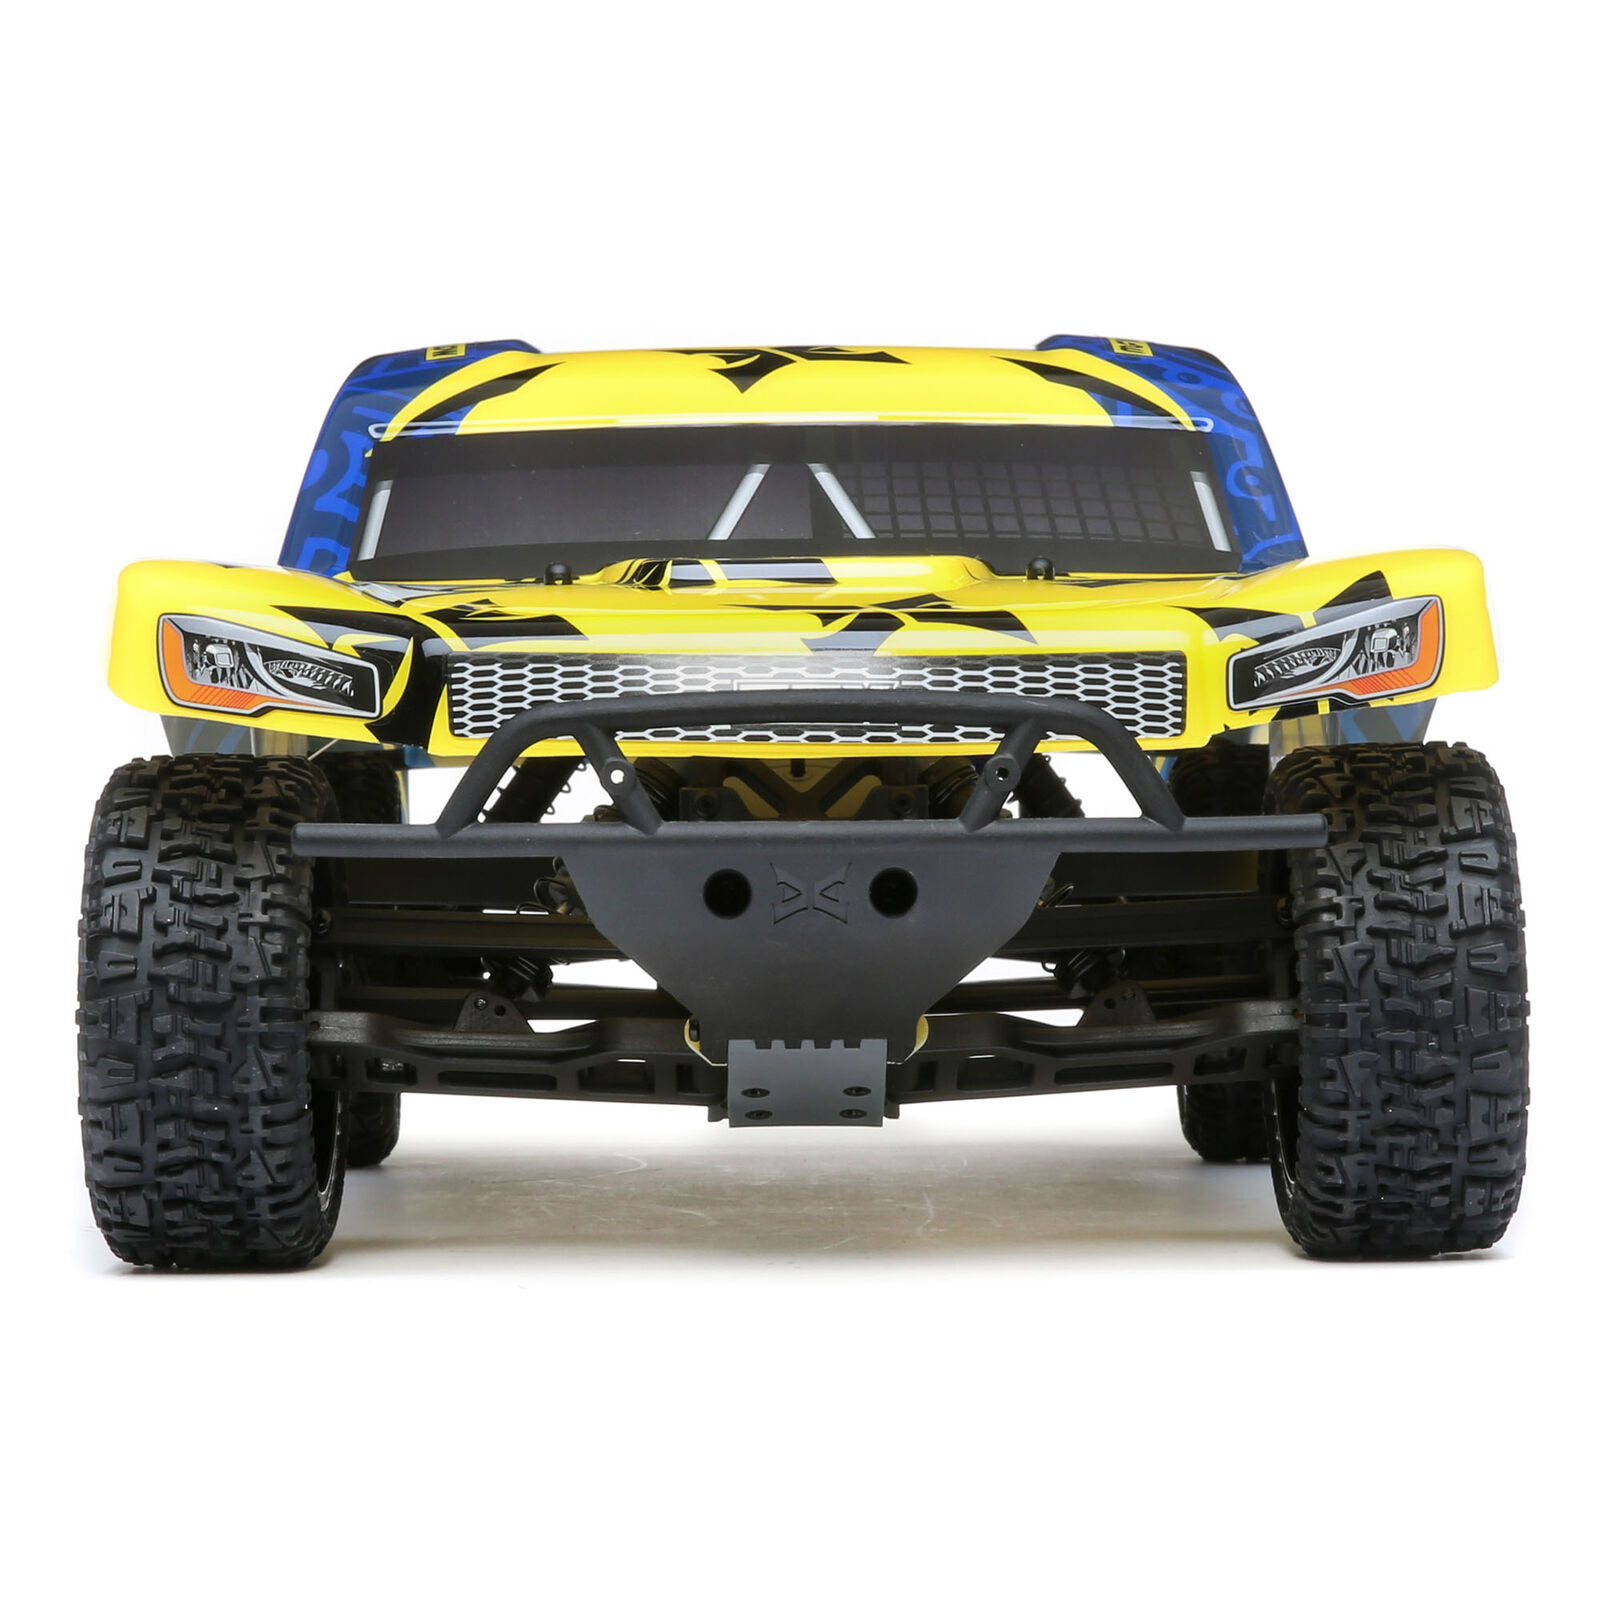 1/10 Torment 2WD SCT Brushed RTR, Yellow/Blue